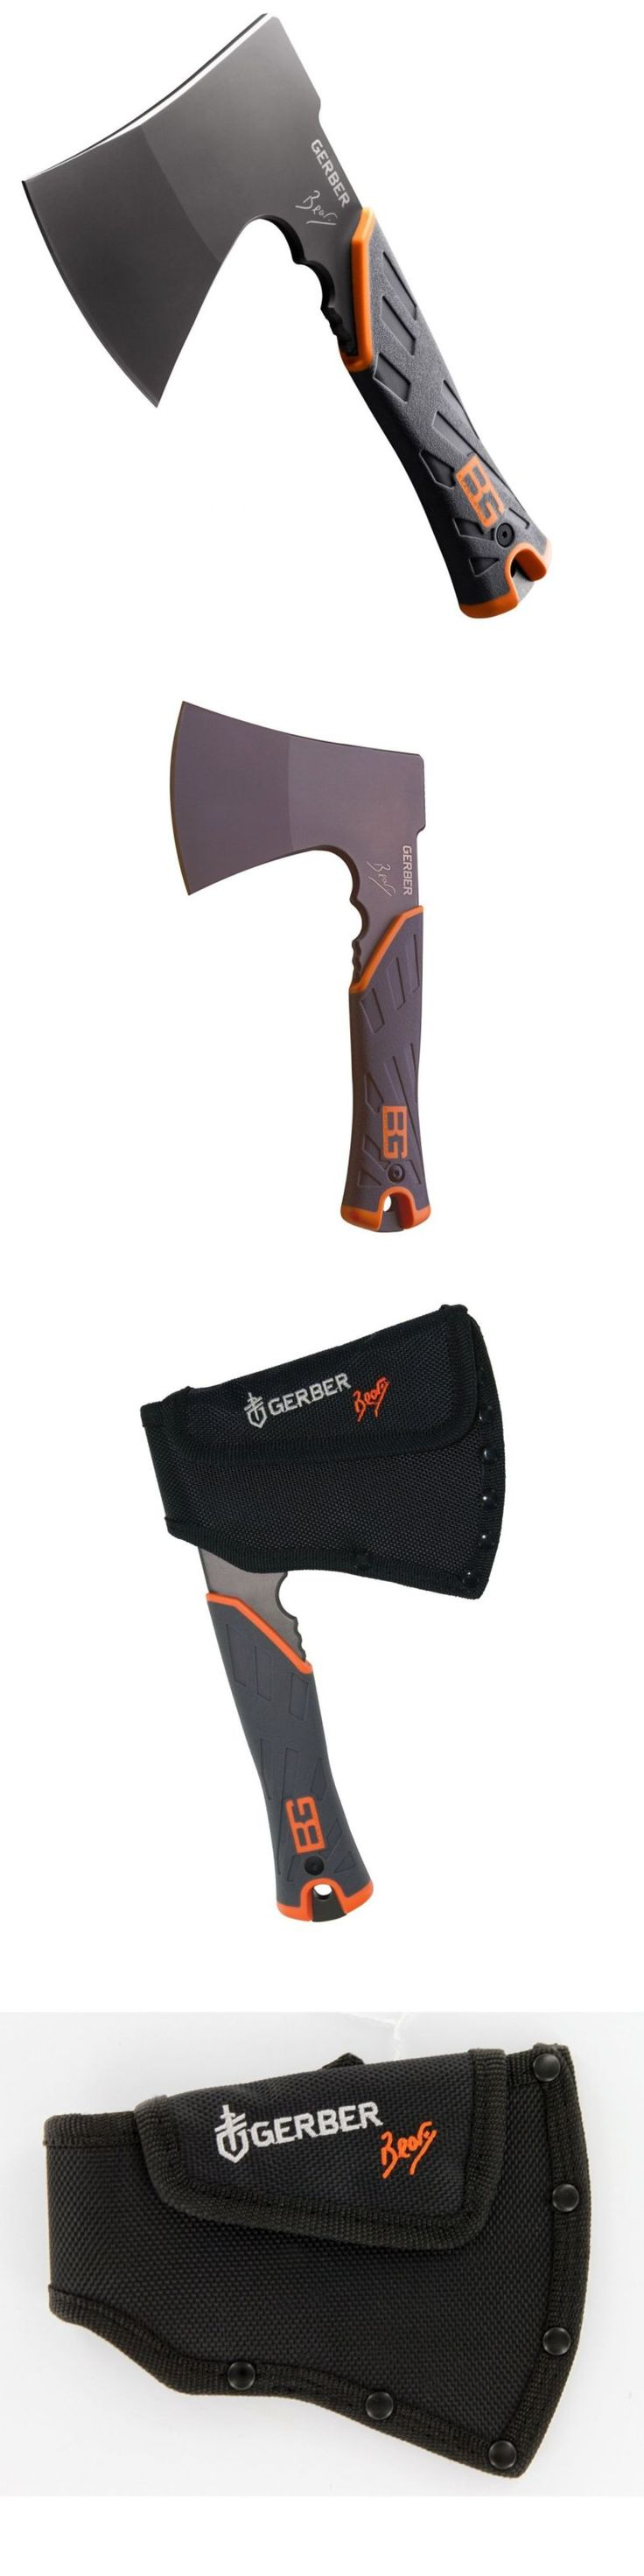 Camping Hatchets and Axes 75234: Gerber Bear Grylls Survival Hatchet [31-002070] -> BUY IT NOW ONLY: $34.22 on eBay!